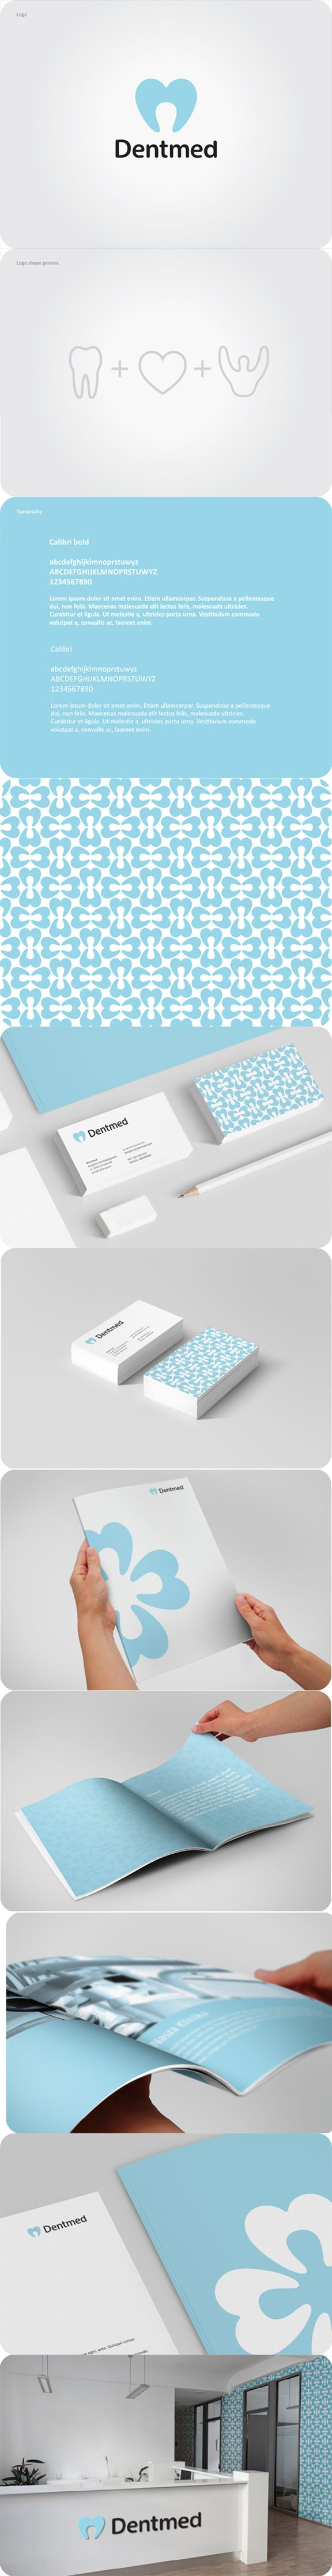 Dentmed | #stationary #corporate #design #corporatedesign #logo #identity #branding #marketing <<< found on www.behance.net pinned by an #advertising agency from #Hamburg / #Germany - www.BlickeDeeler.de | Follow us on www.facebook.com/BlickeDeeler